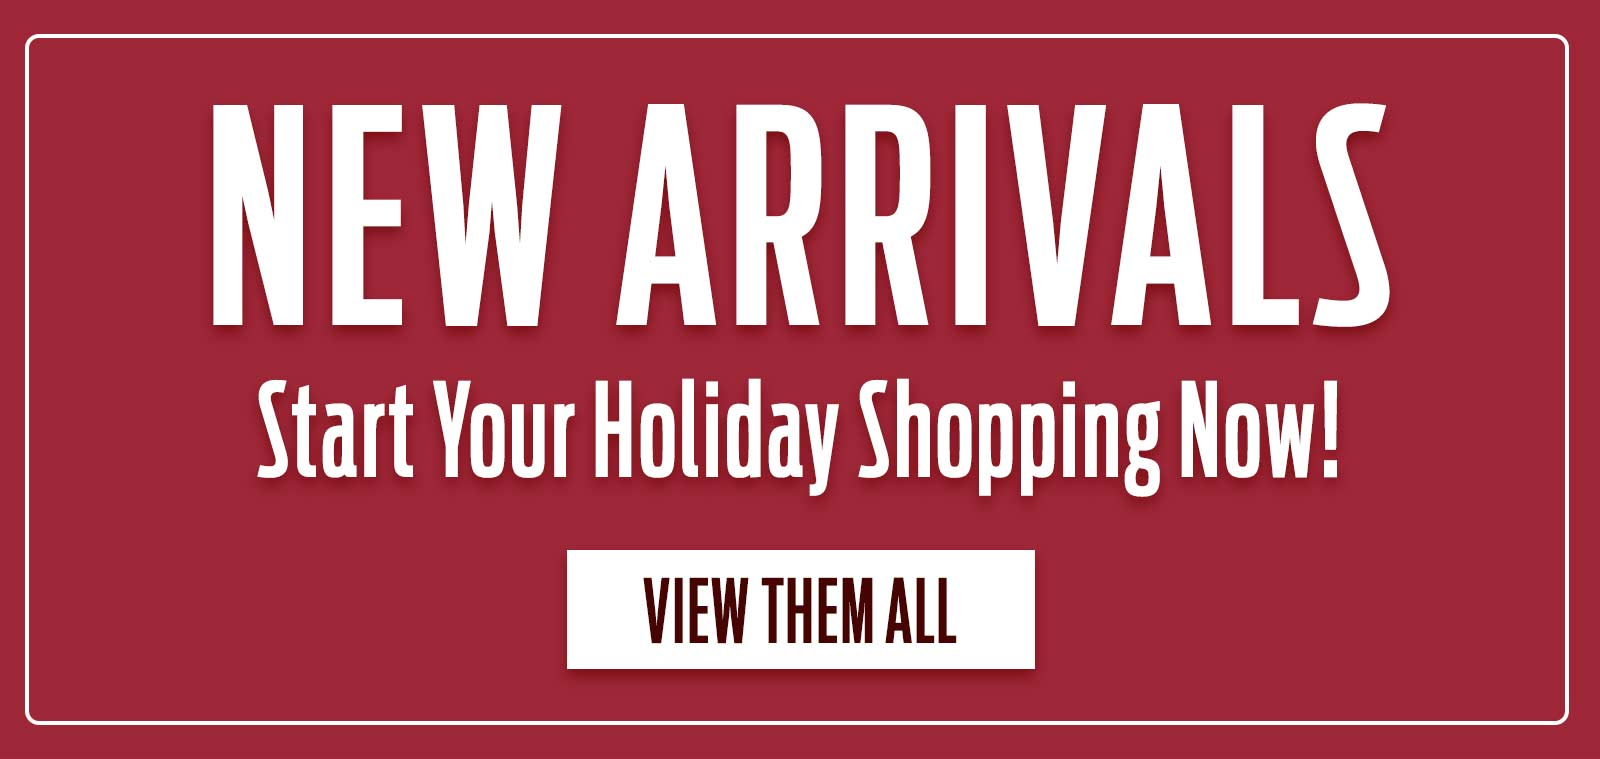 New Arrivals - Start Your Holiday Shopping Now! - View Them All